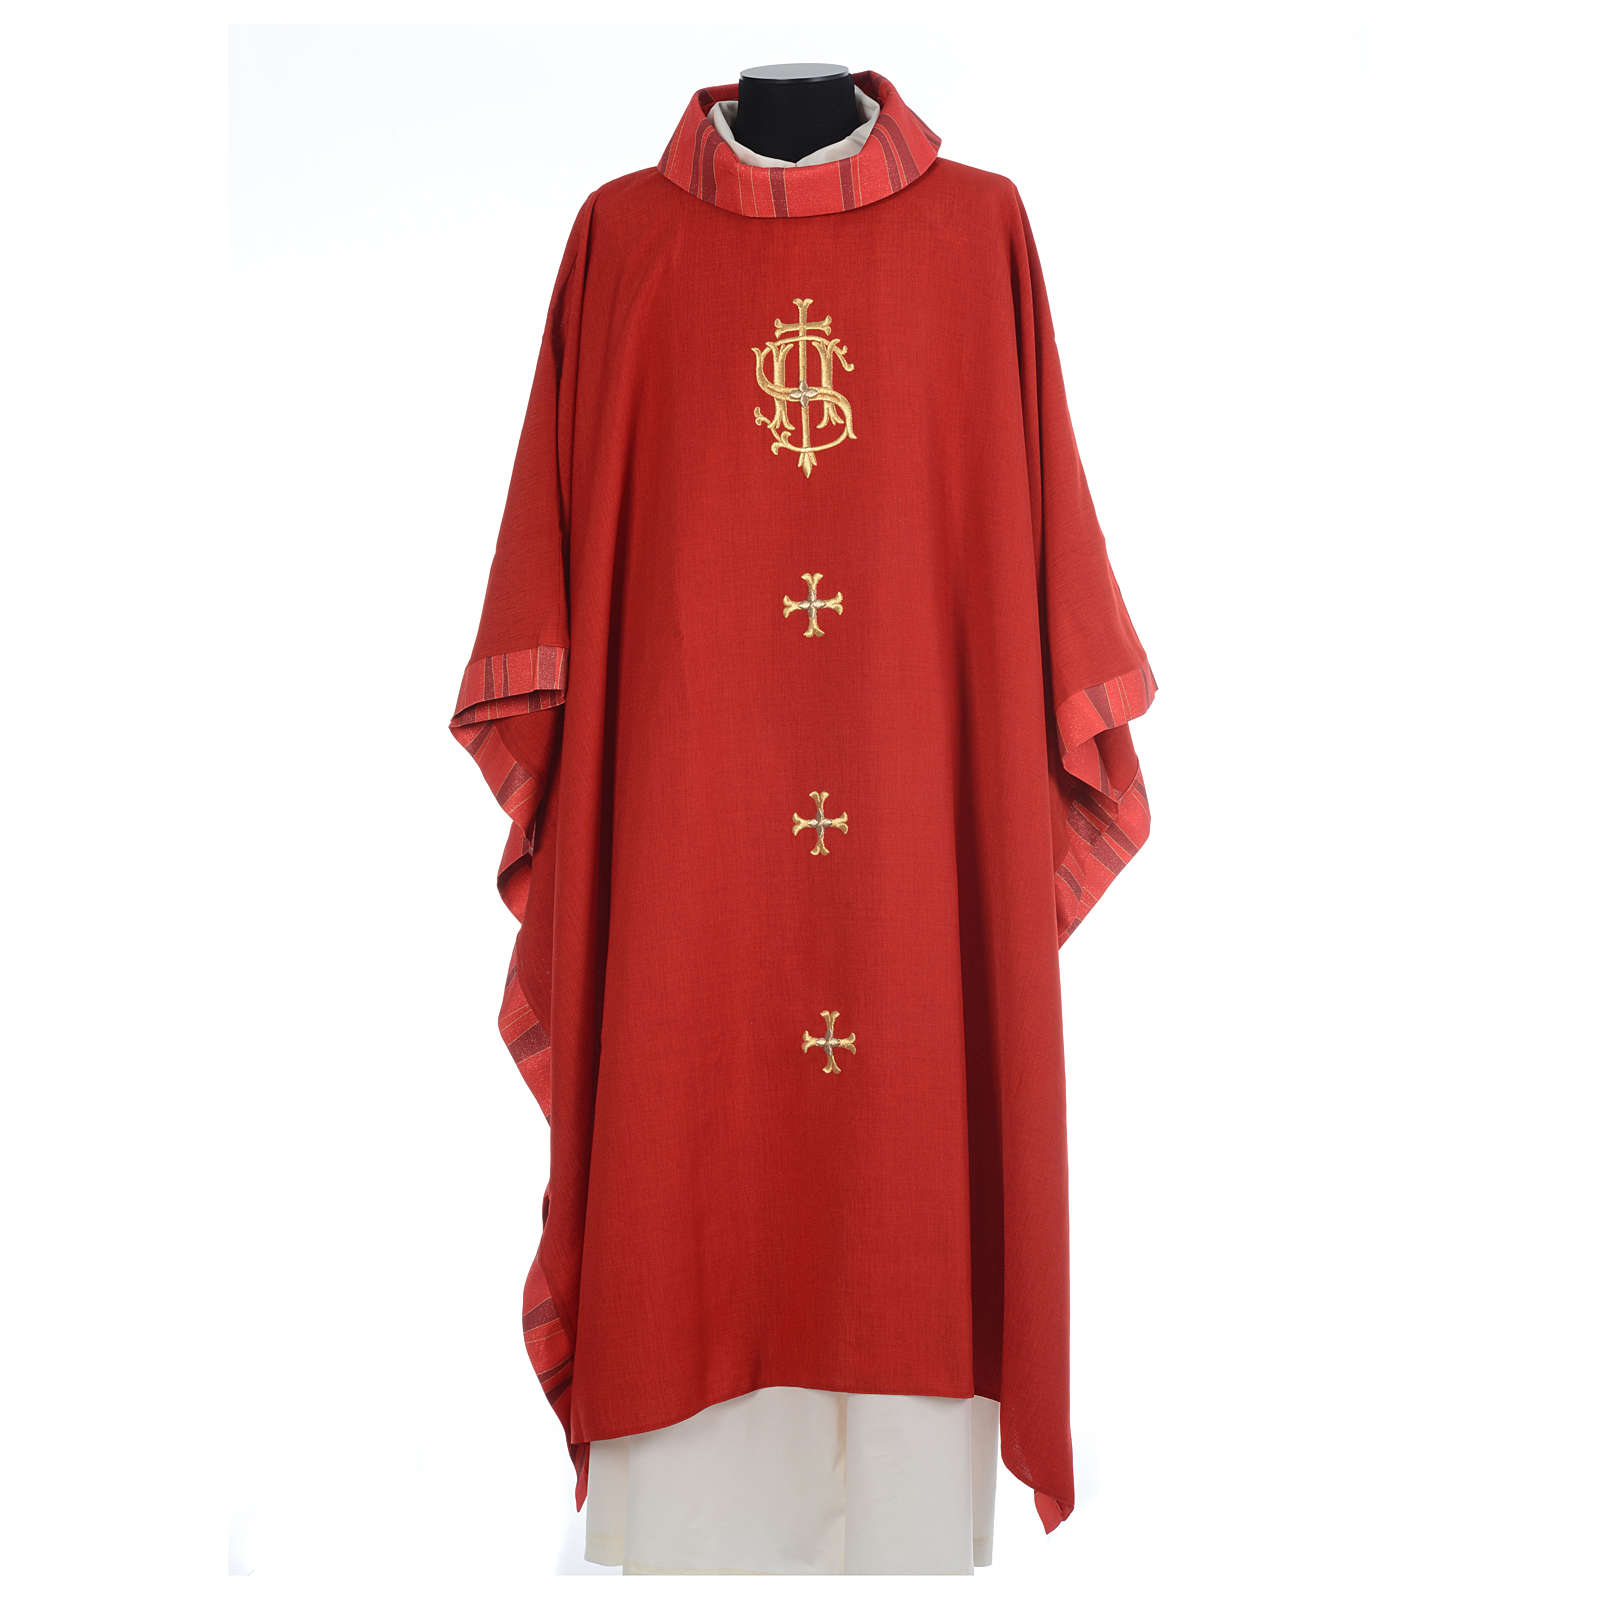 Catholic Priest Chasuble with central IHS and crosses 4